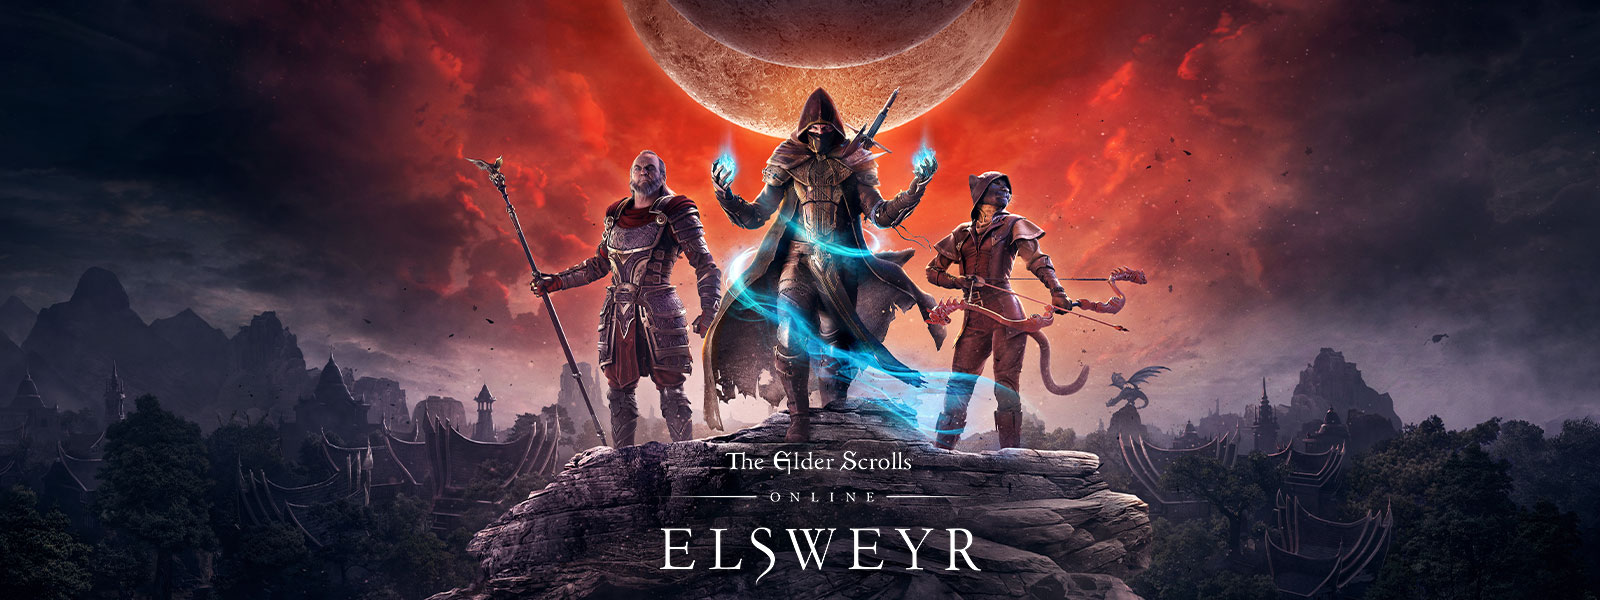 The Elder Scrolls Online: Elsweyr logo, three characters on top of a rock posing with two moons and red light